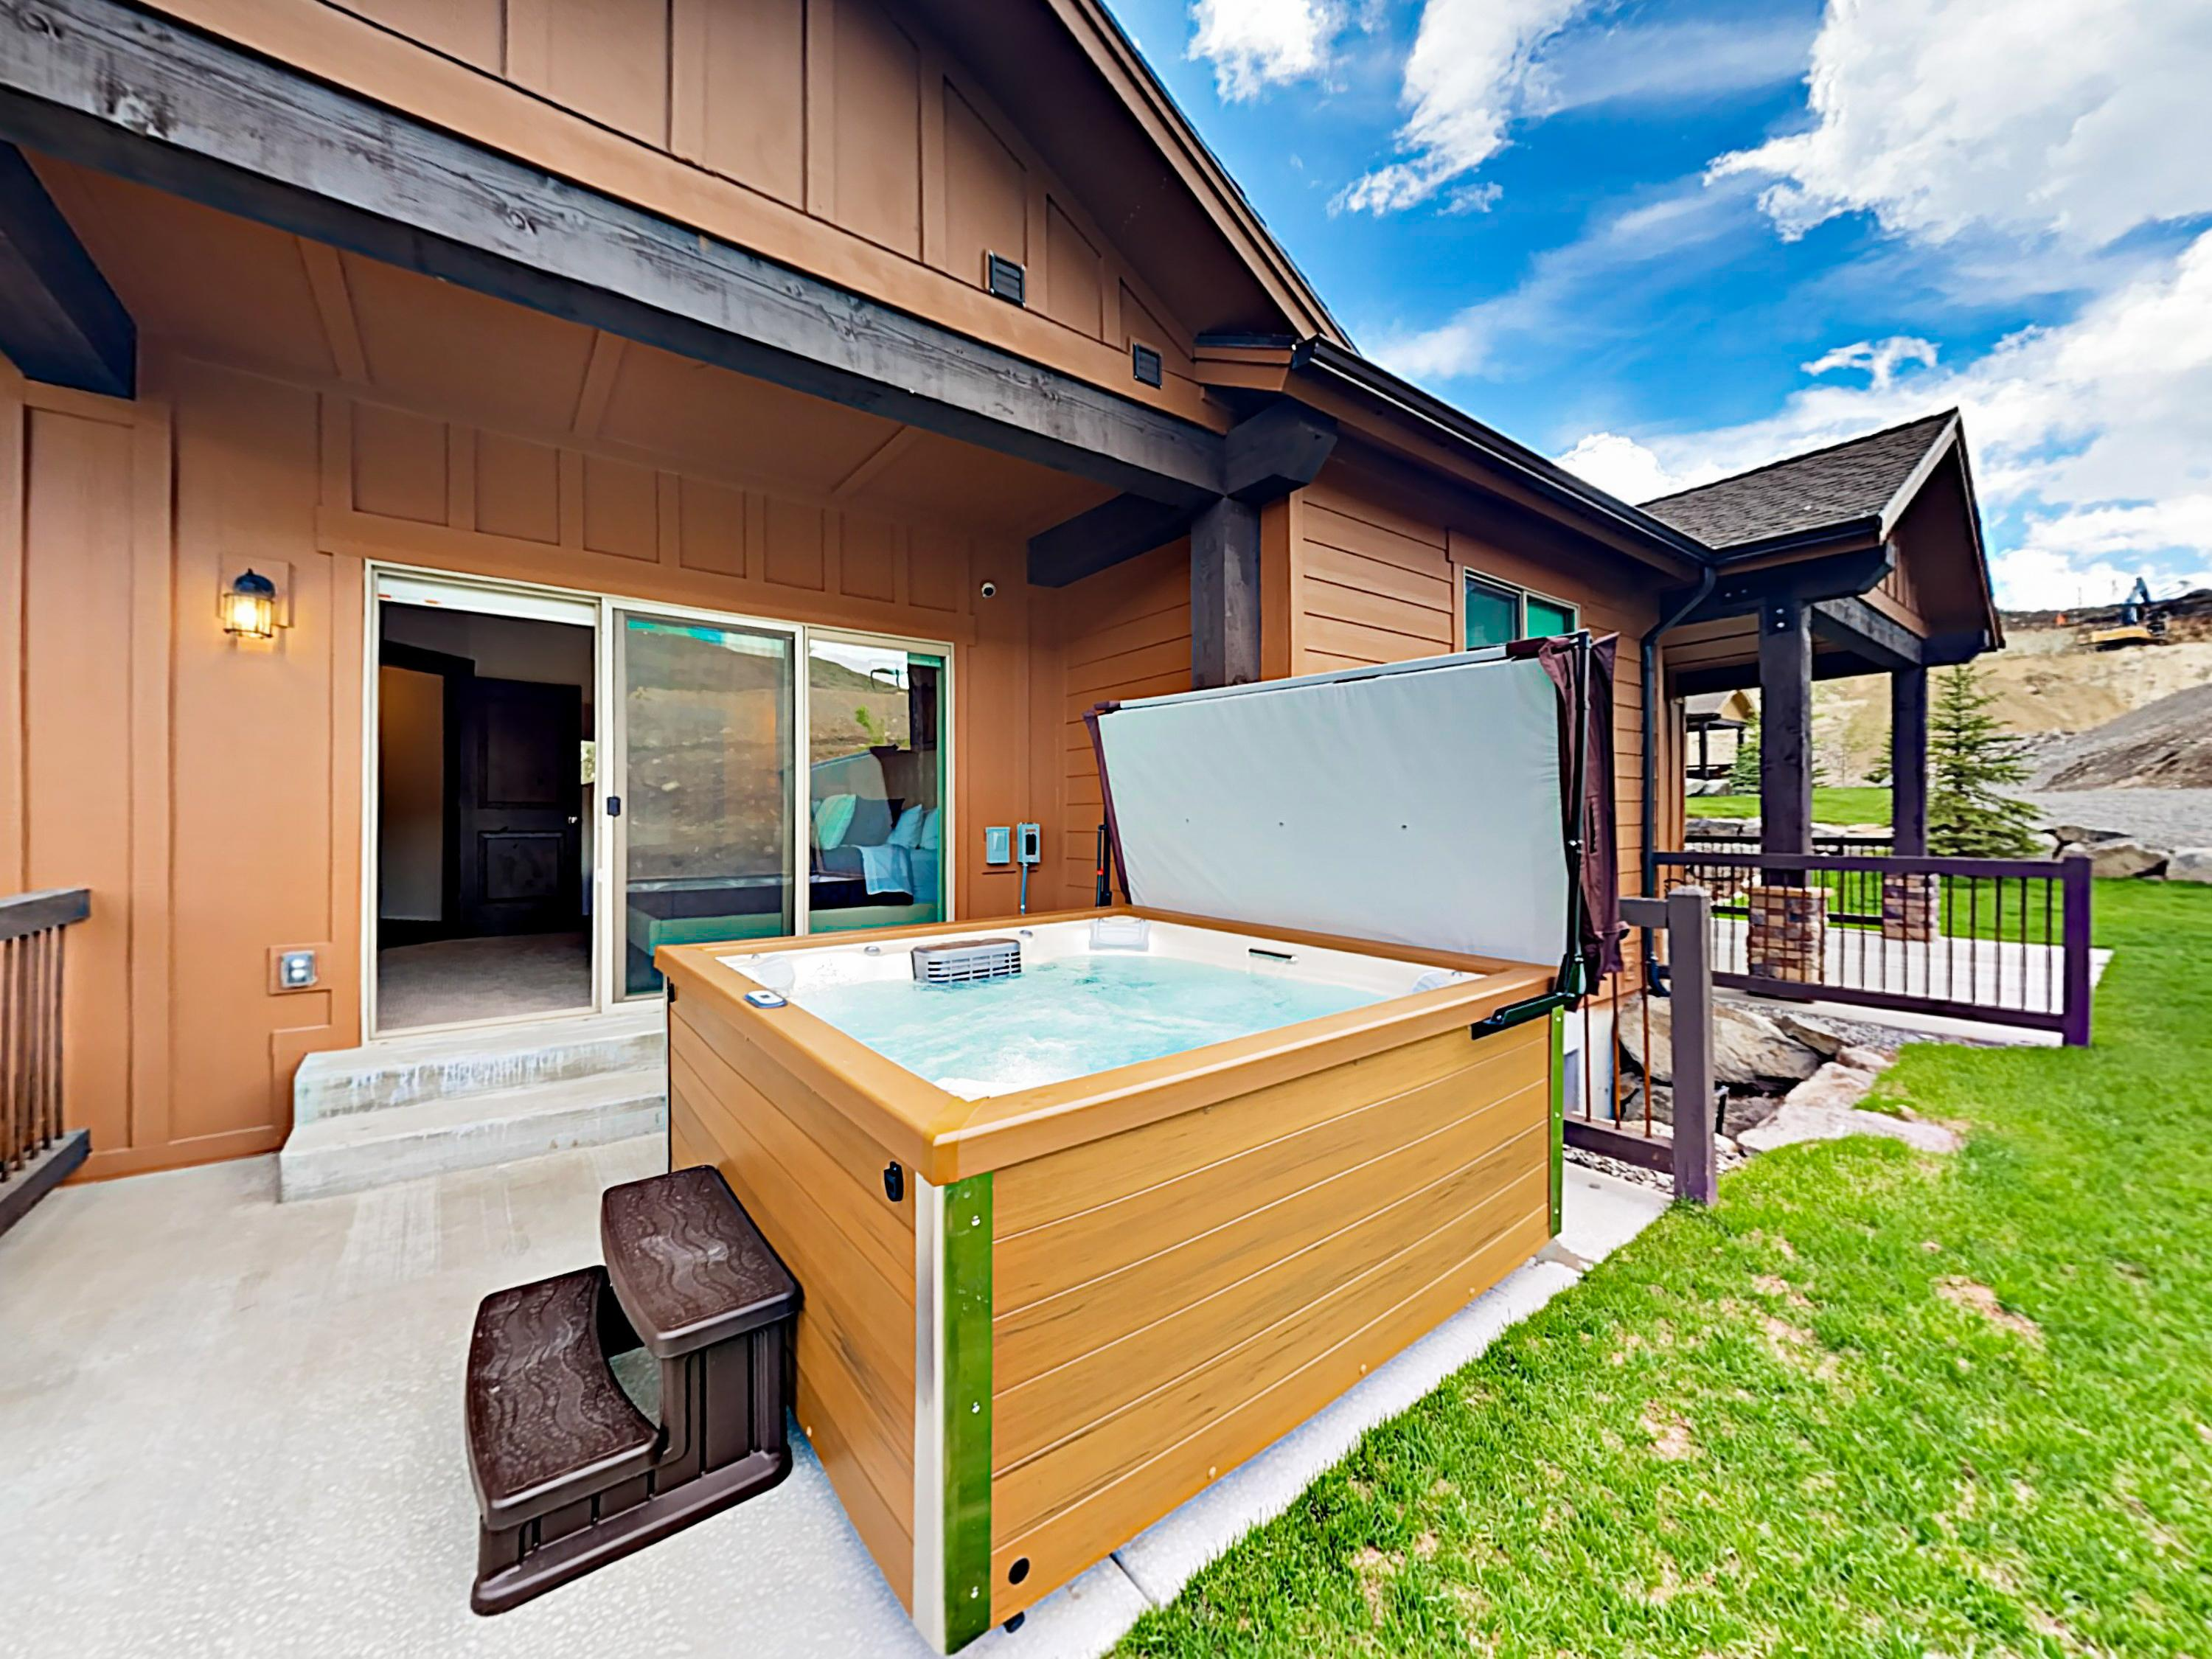 Enjoy a relaxing dip in the hot tub located on the back porch.